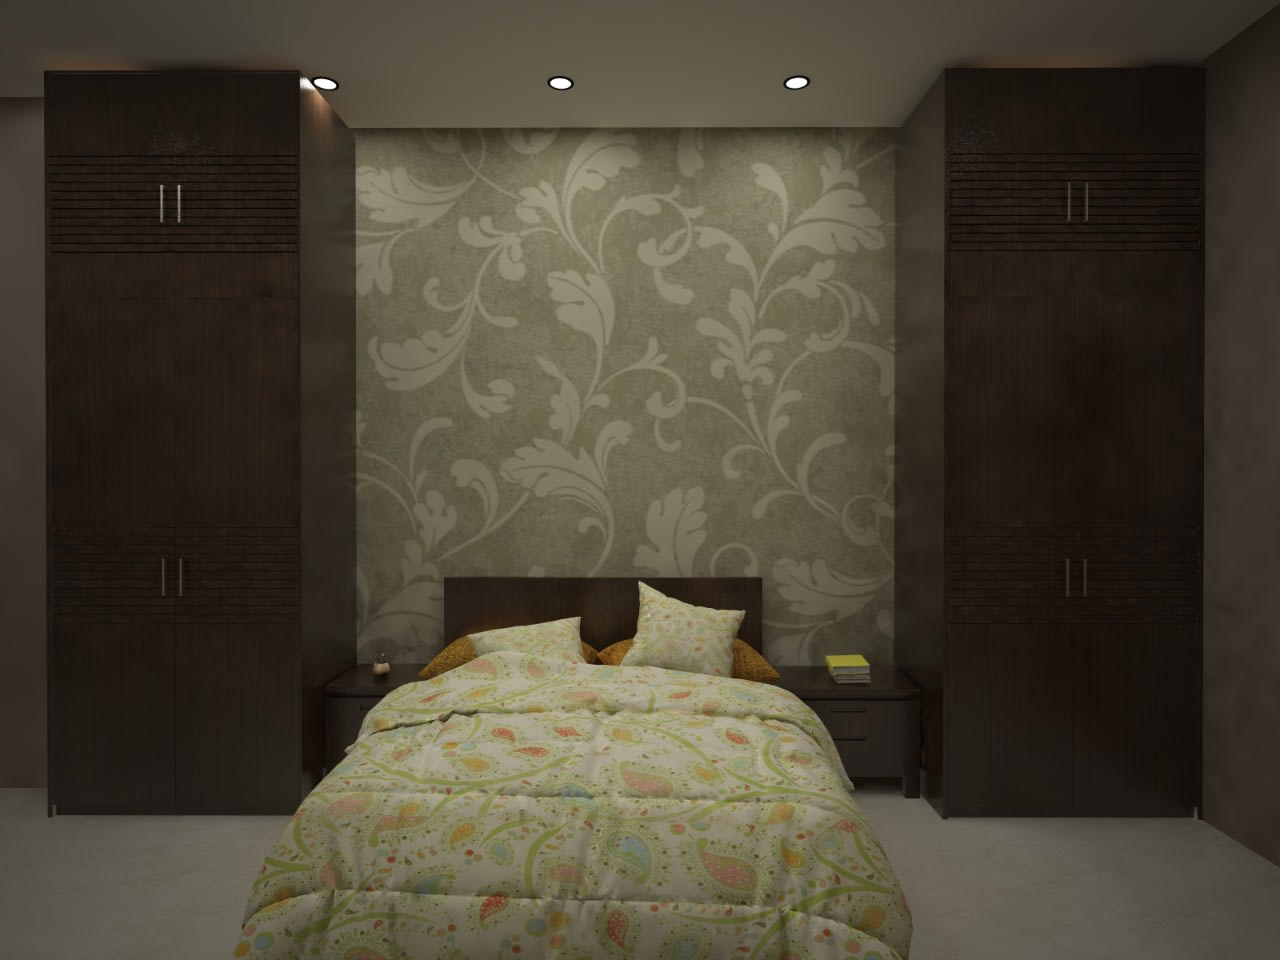 Bedroom with wooden wardrobe and wall decor by Richa Jindal Bedroom Modern | Interior Design Photos & Ideas